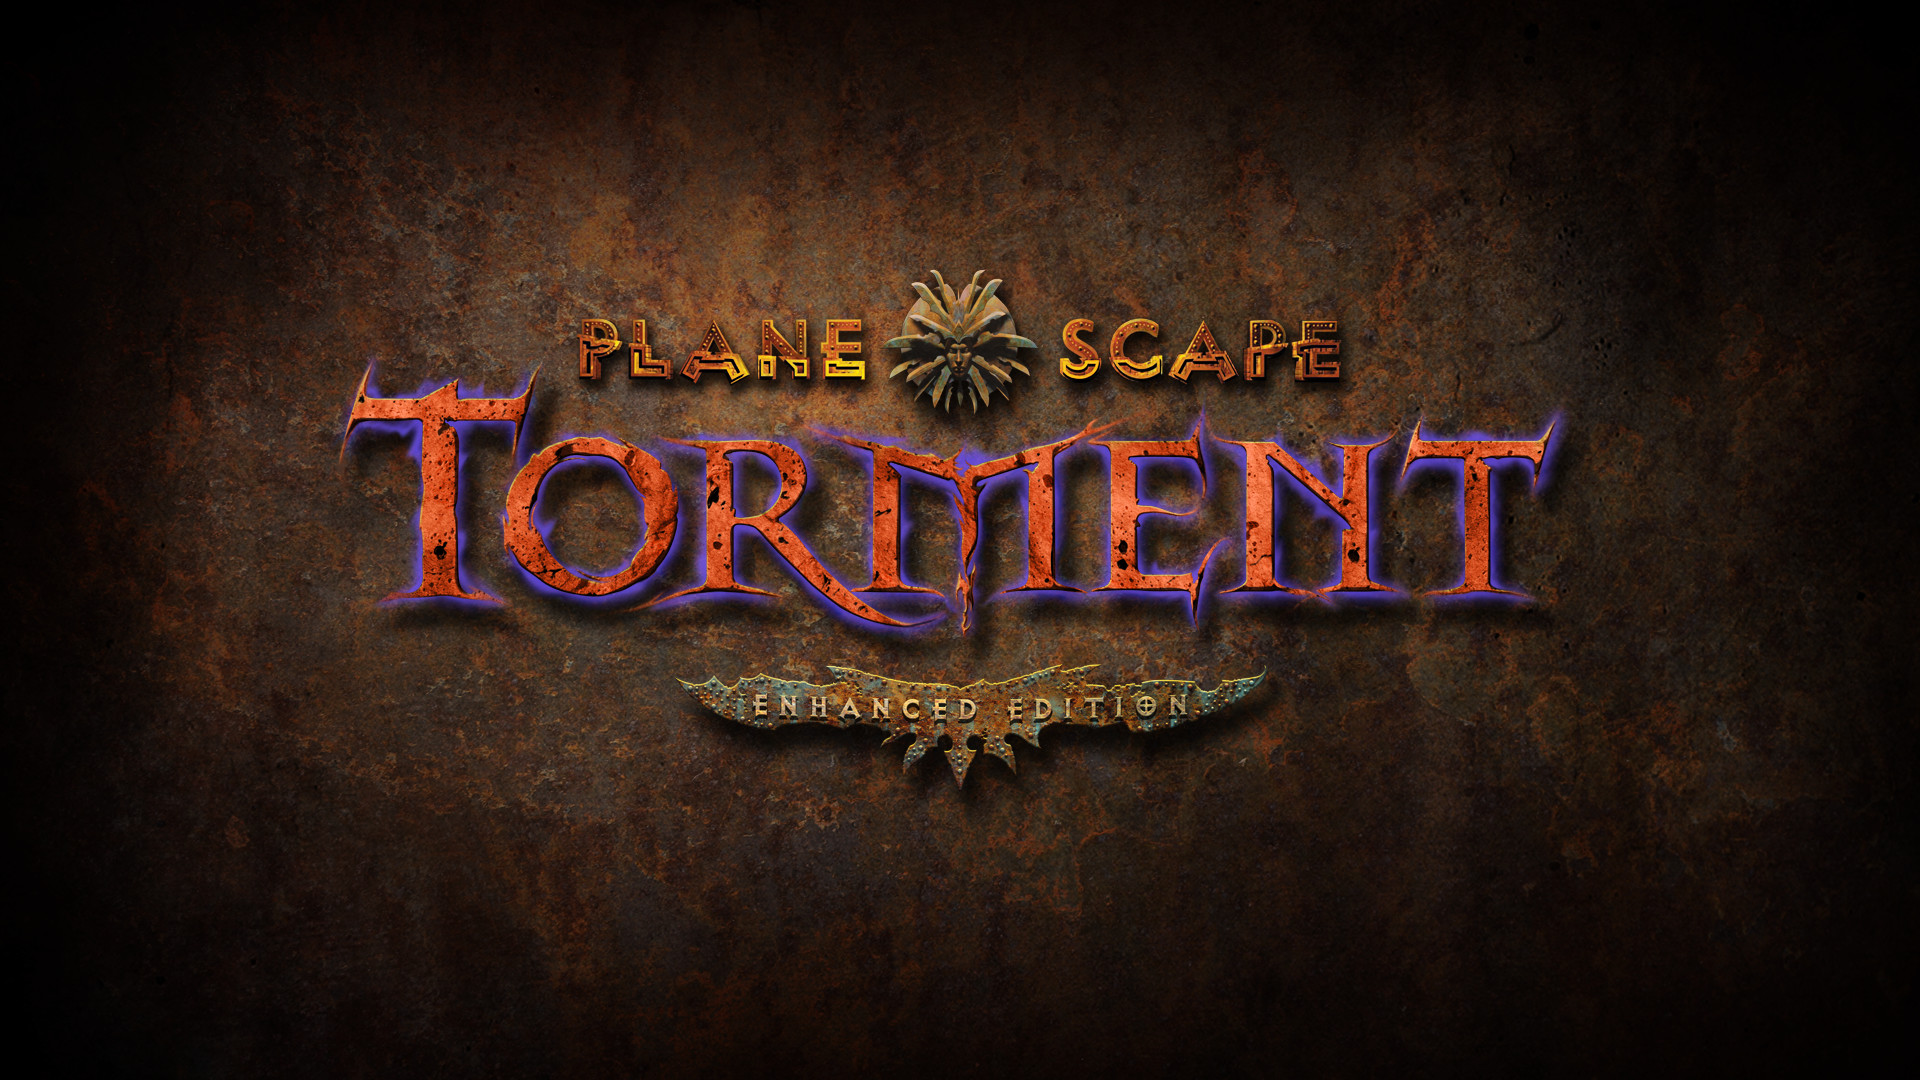 Planescape: Torment - Enhanced Edition image 1